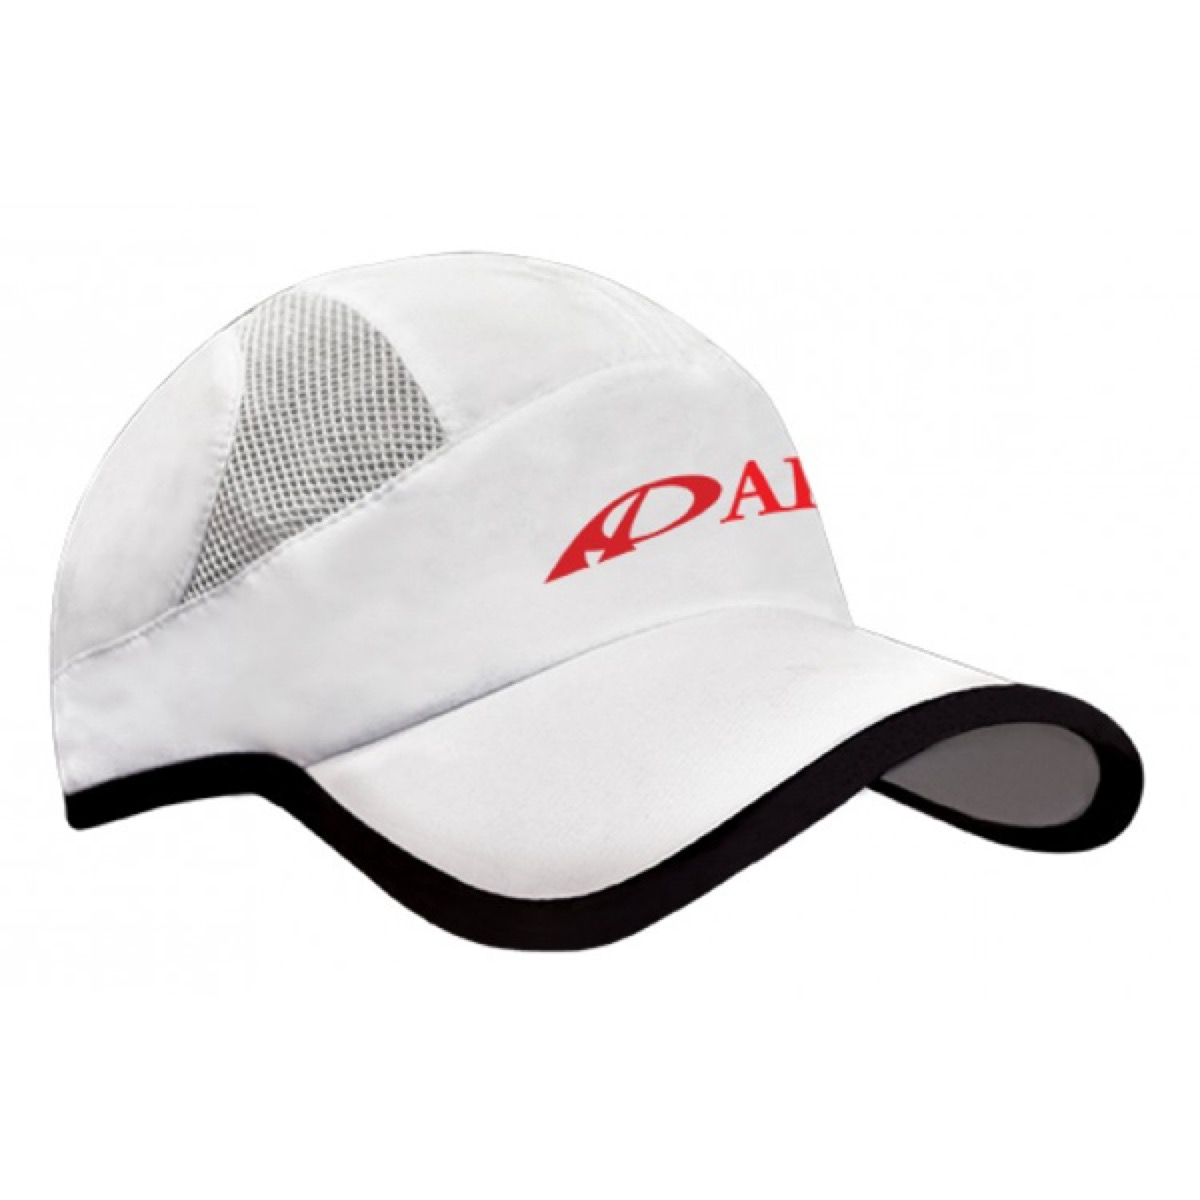 Runner Cap Unstructured, From $5.38